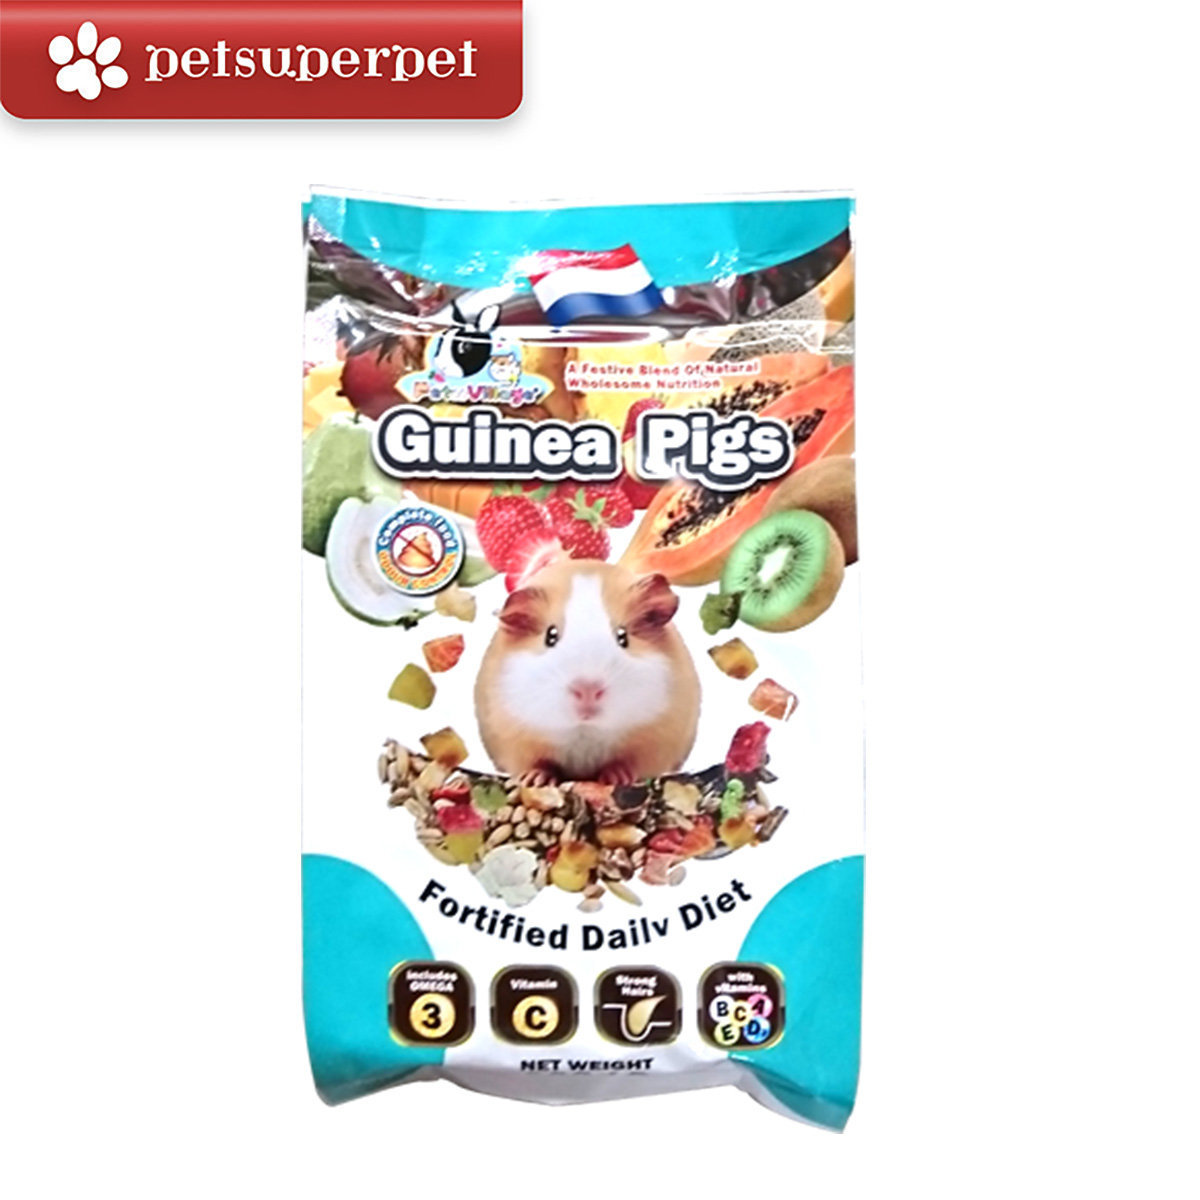 Guinea Pigs Fortified Daily Diet 800g